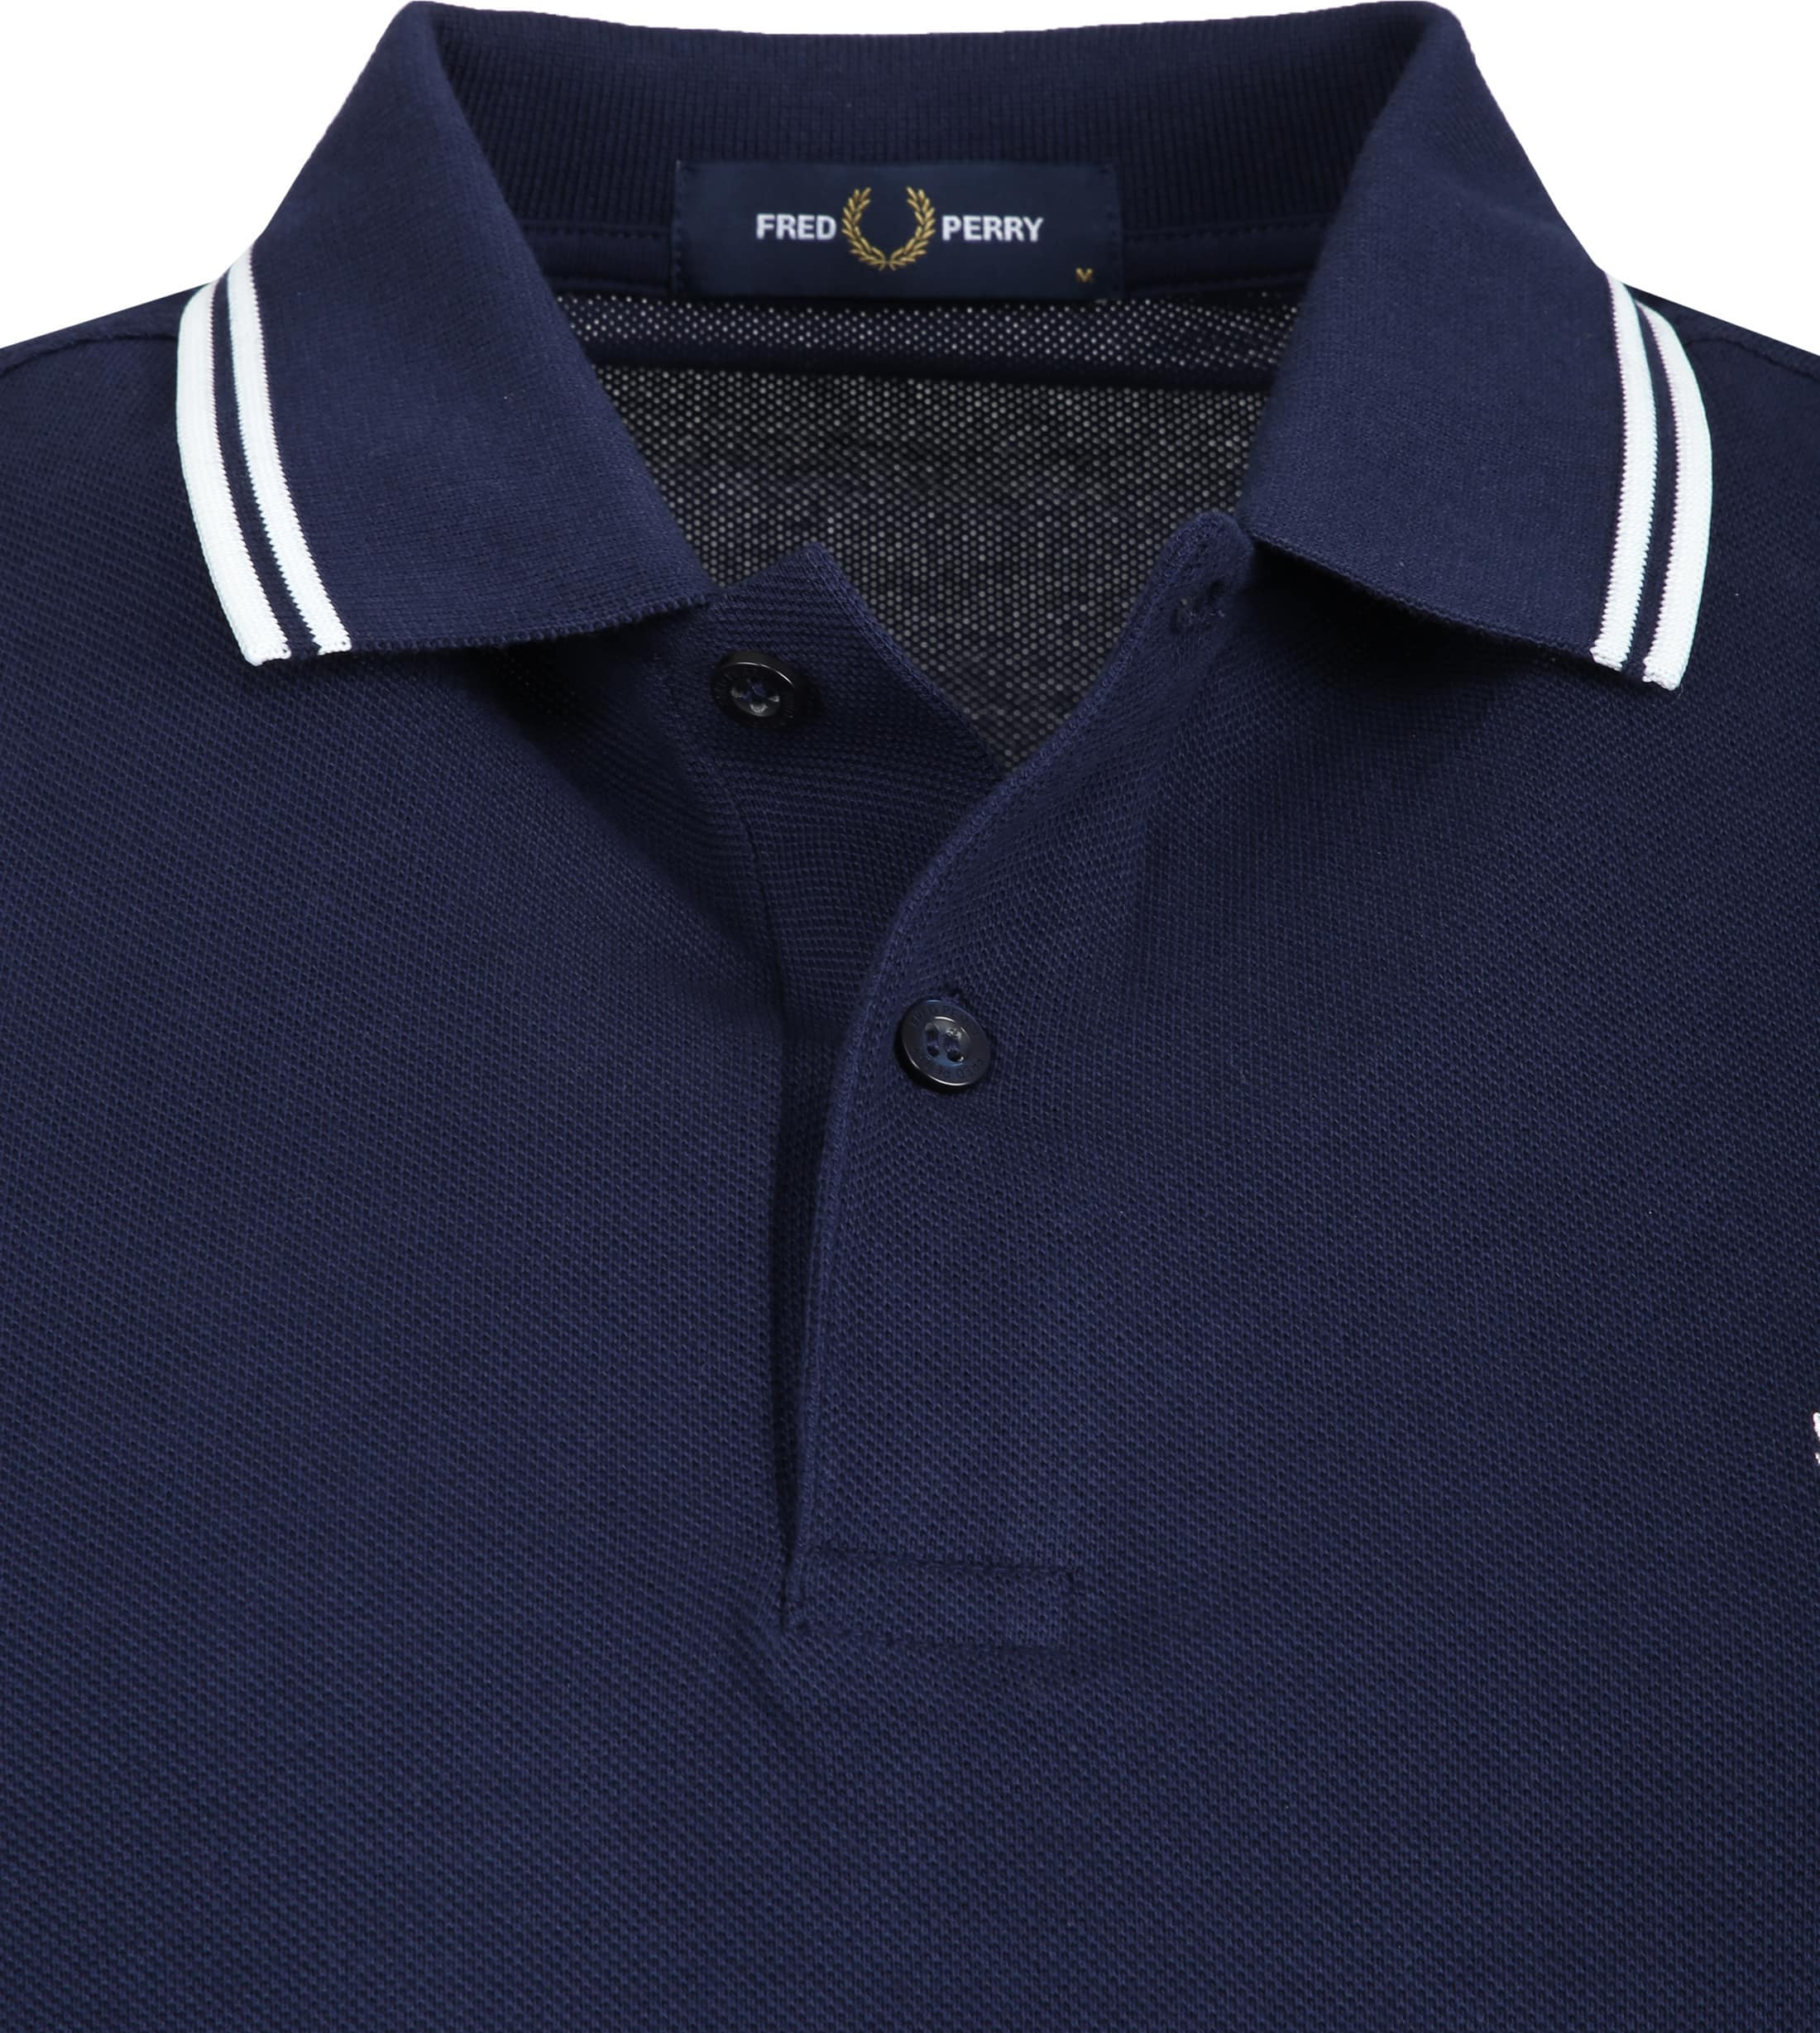 Fred Perry LS Poloshirt Navy I86 foto 1